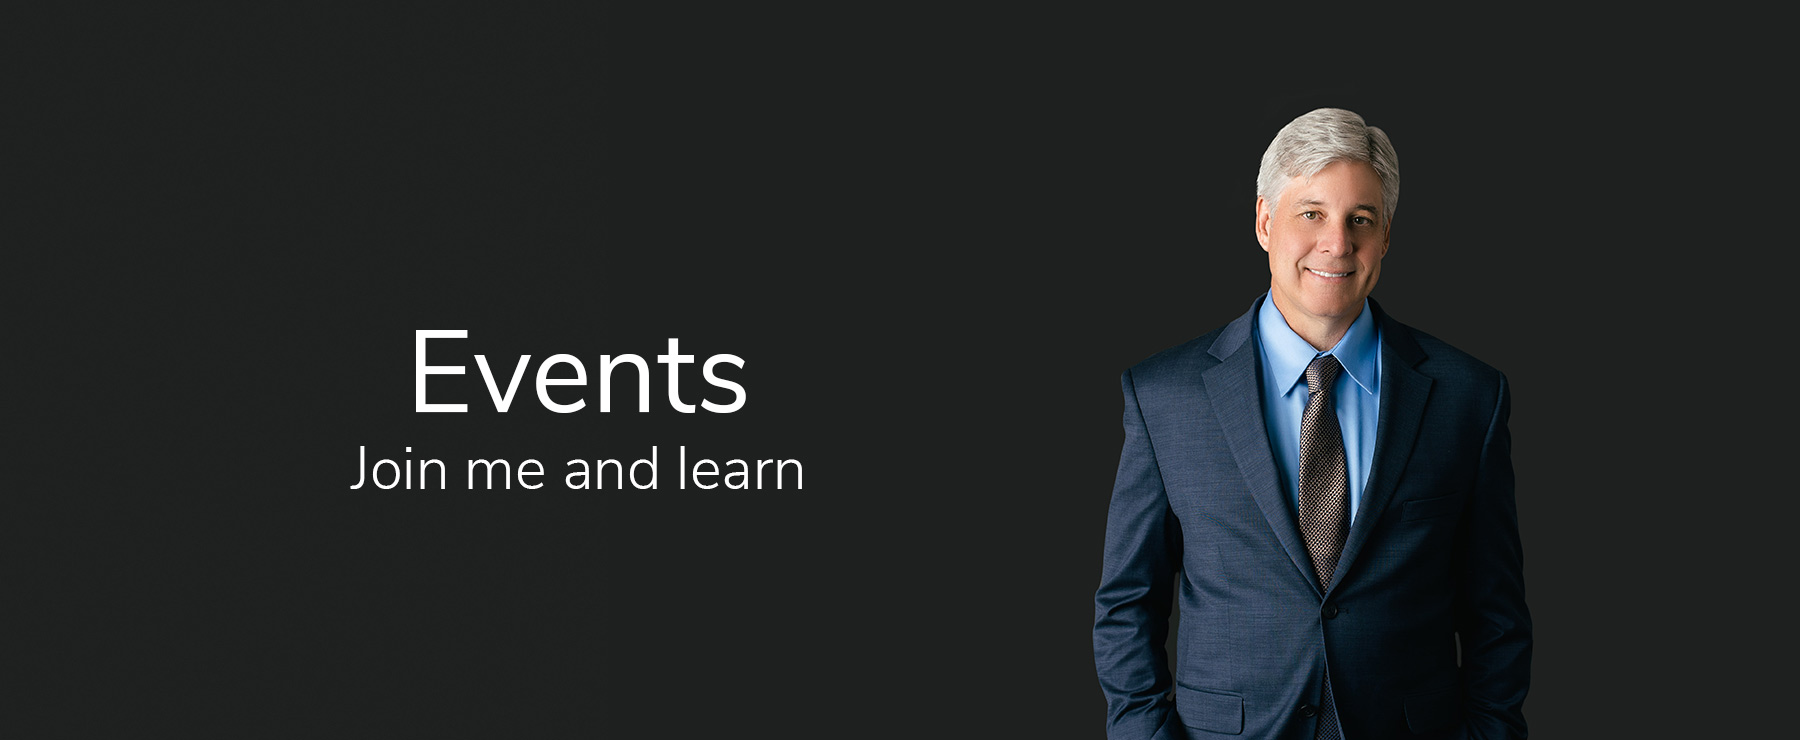 business learning events